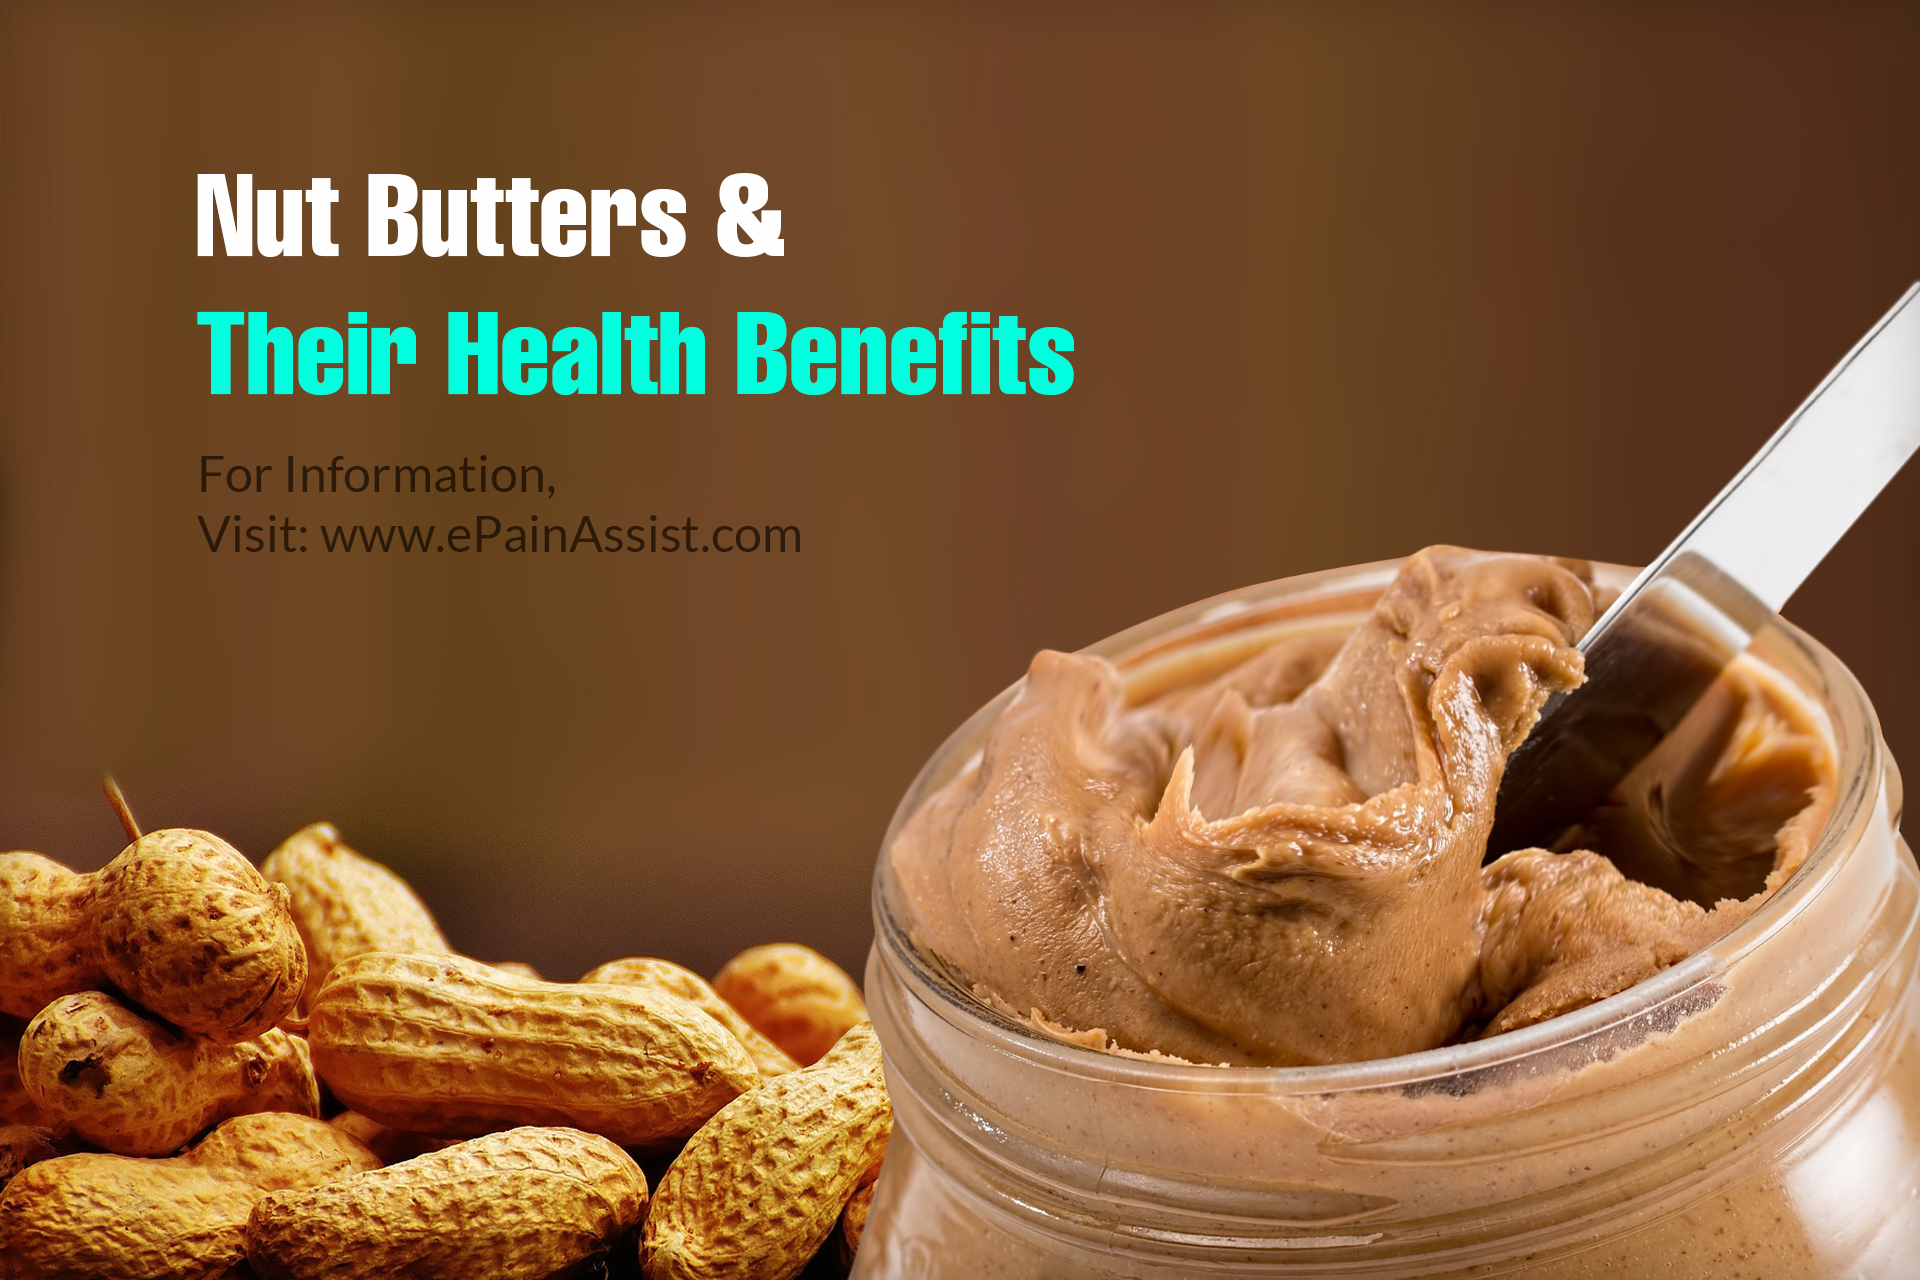 Nut Butters and Their Health Benefits